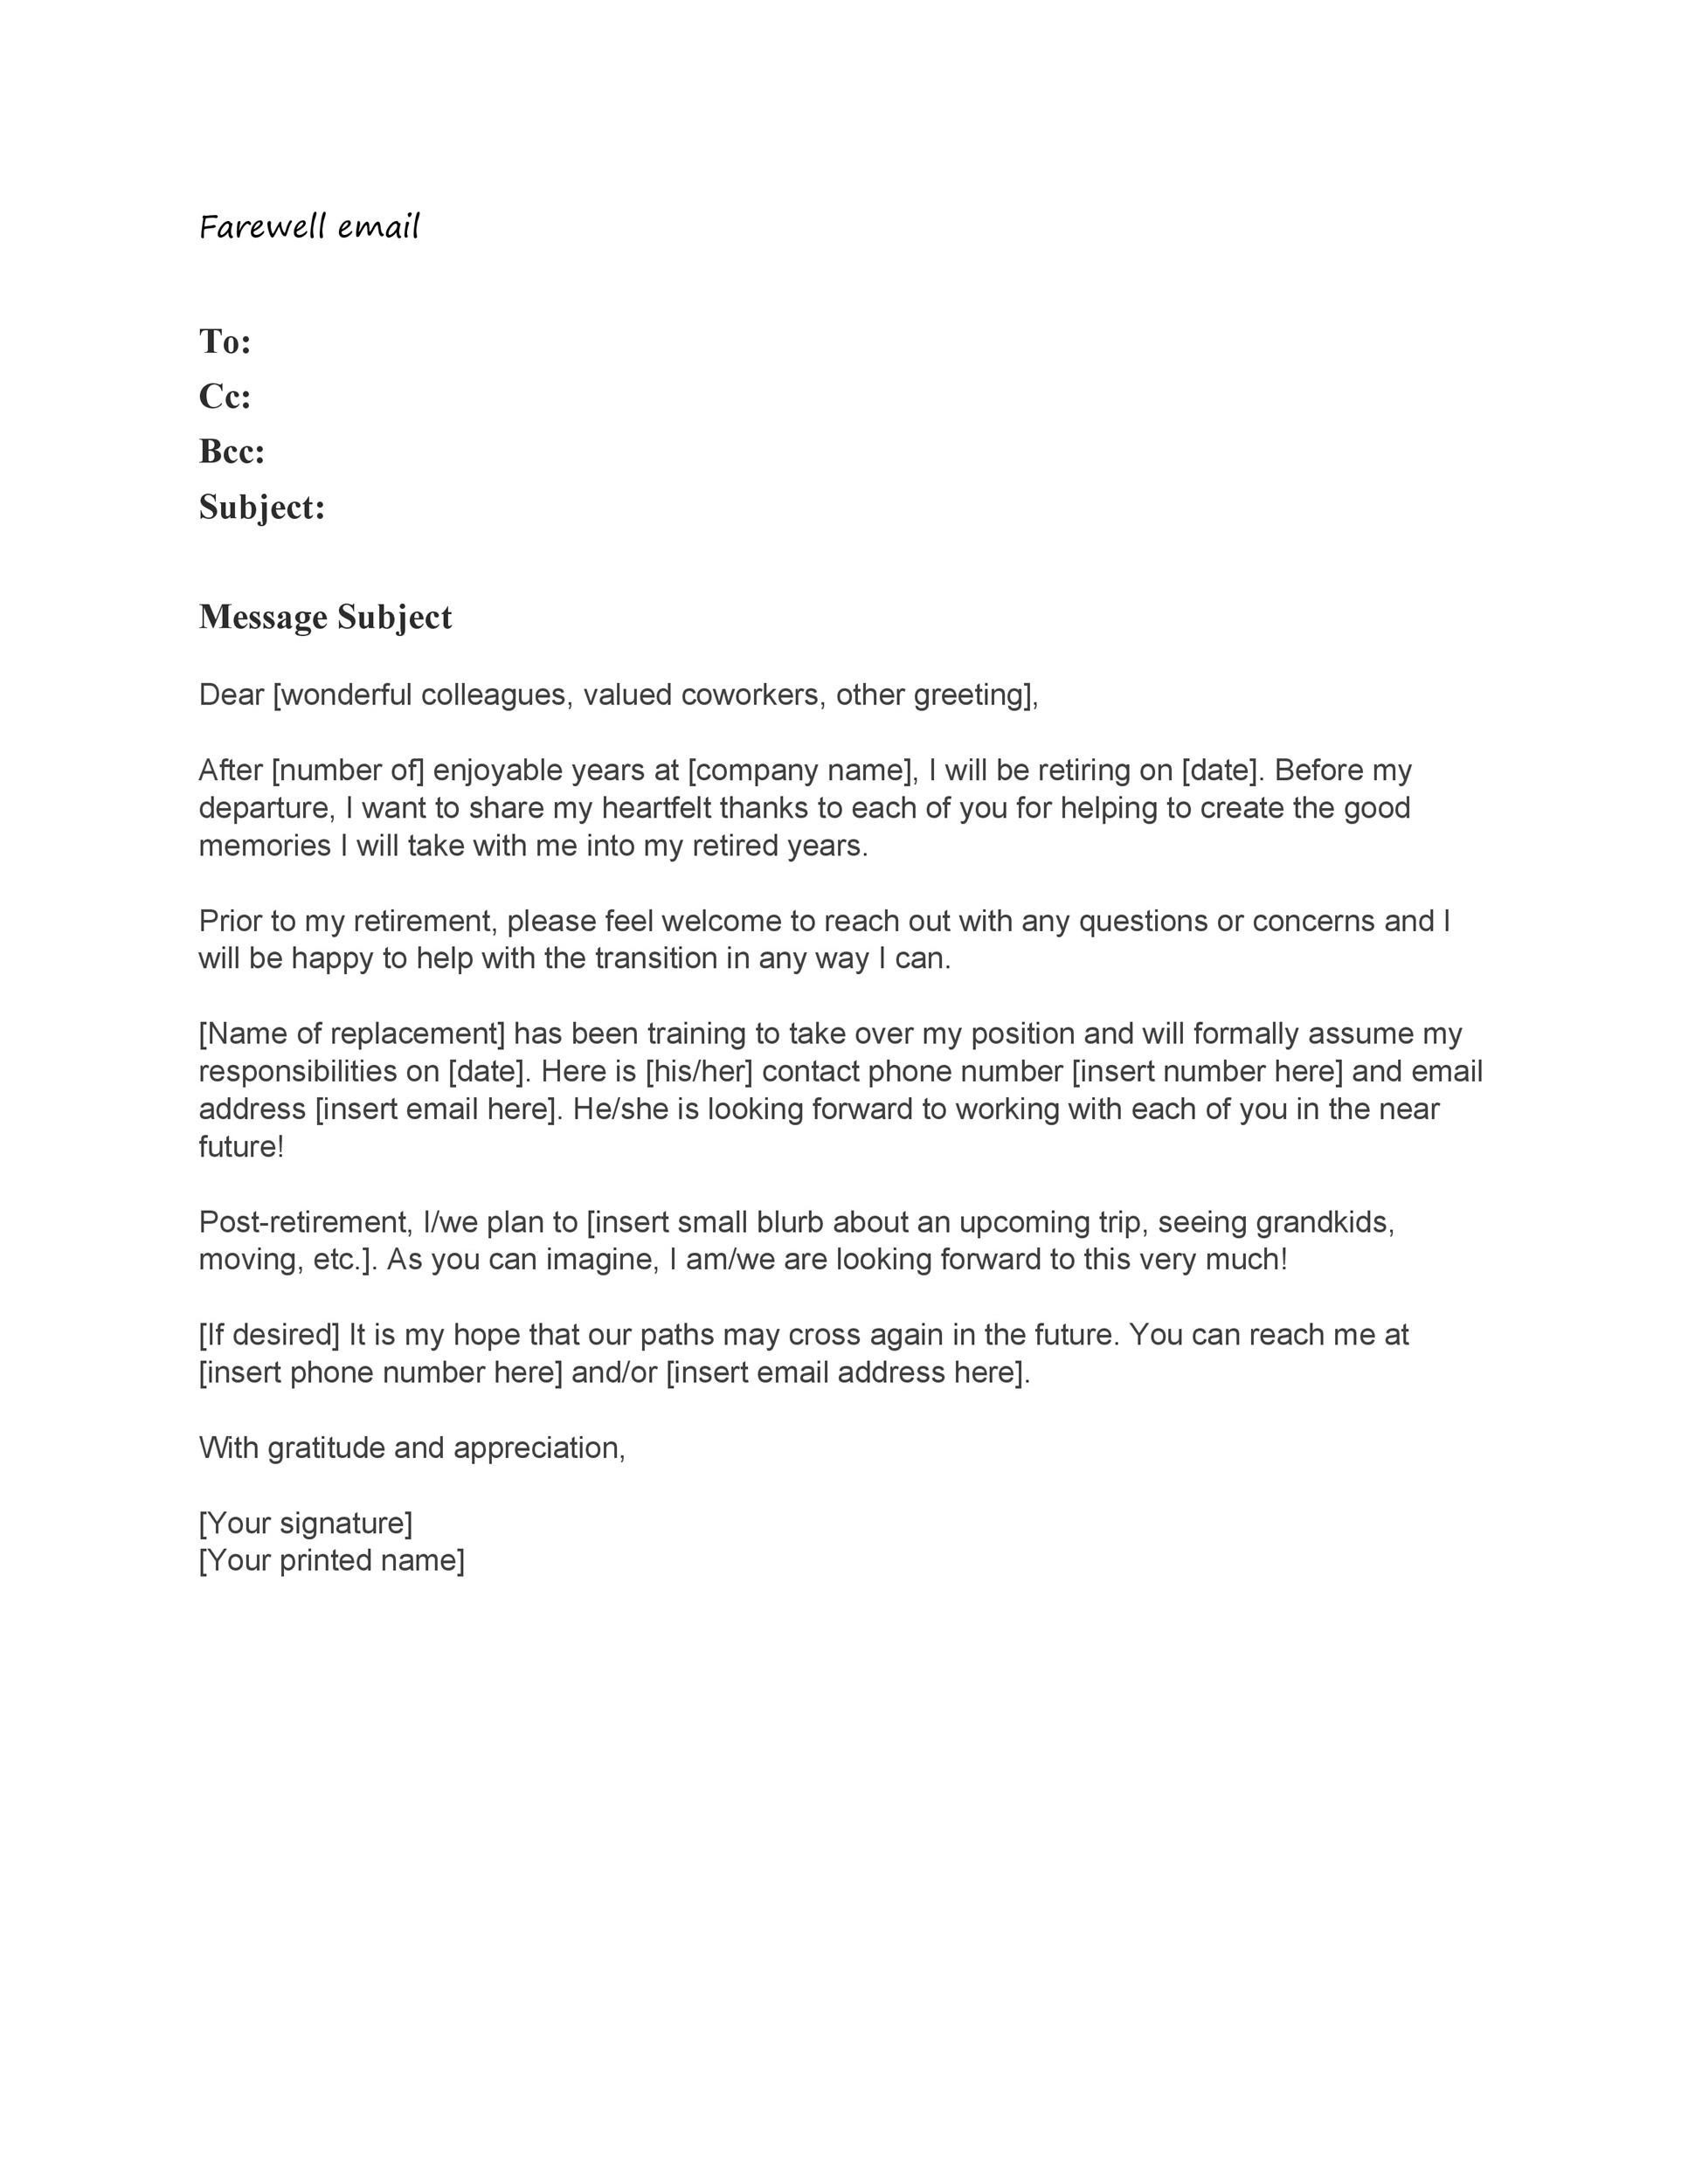 Heartfelt Farewell Letter To Colleagues : heartfelt, farewell, letter, colleagues, Heartfelt, Farewell, Letter, Colleagues